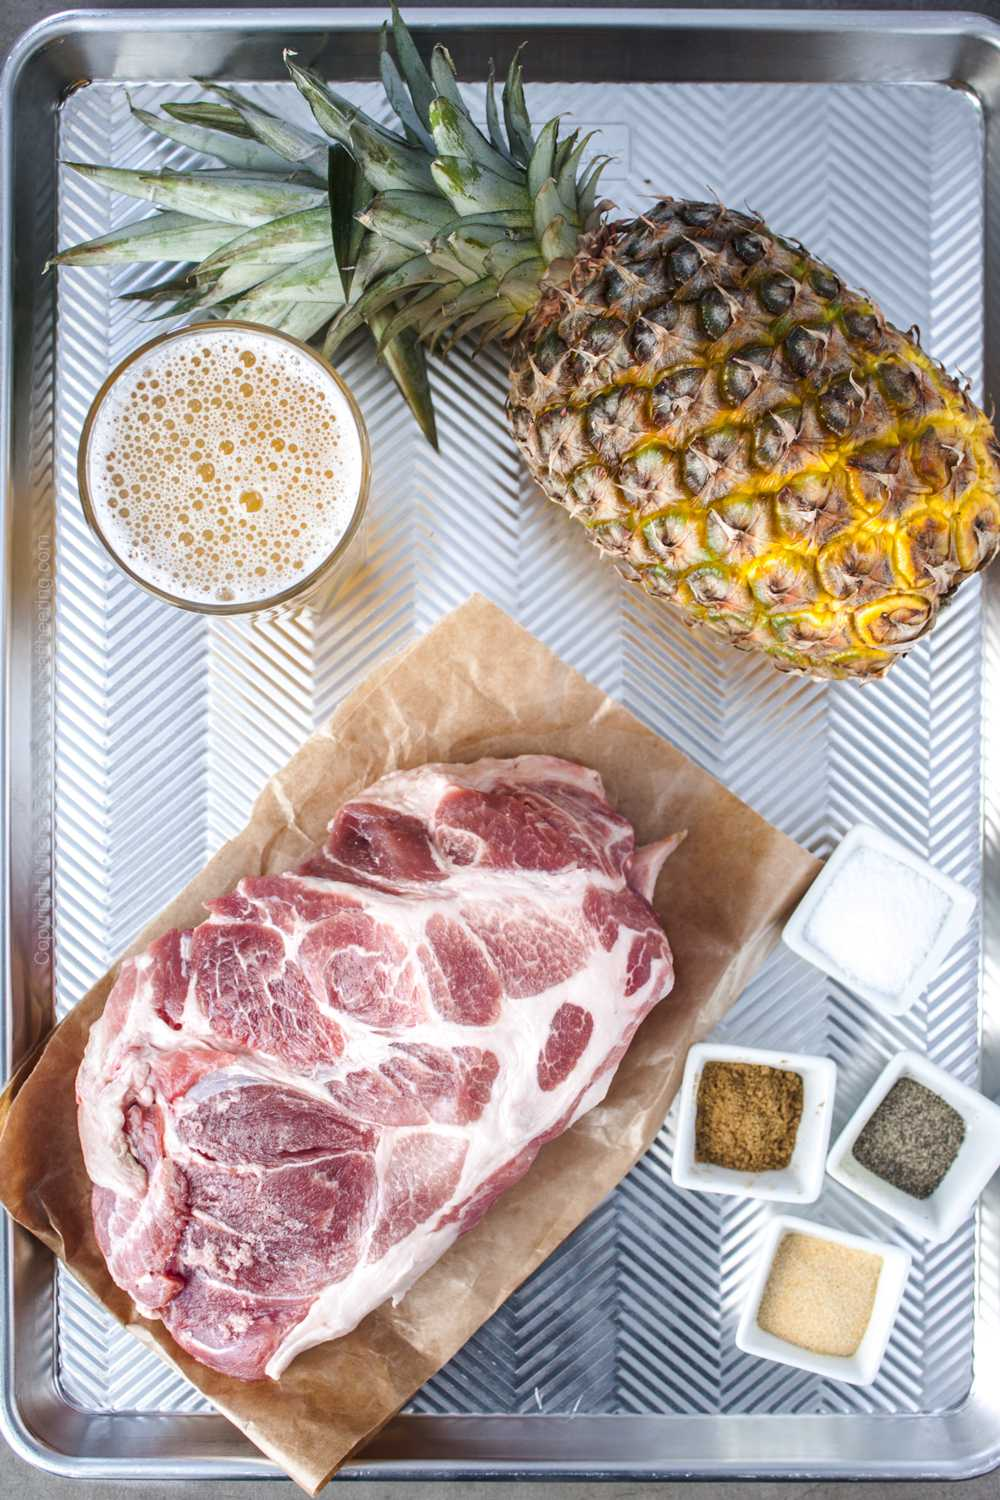 Raw ingredients for pineapple pork.